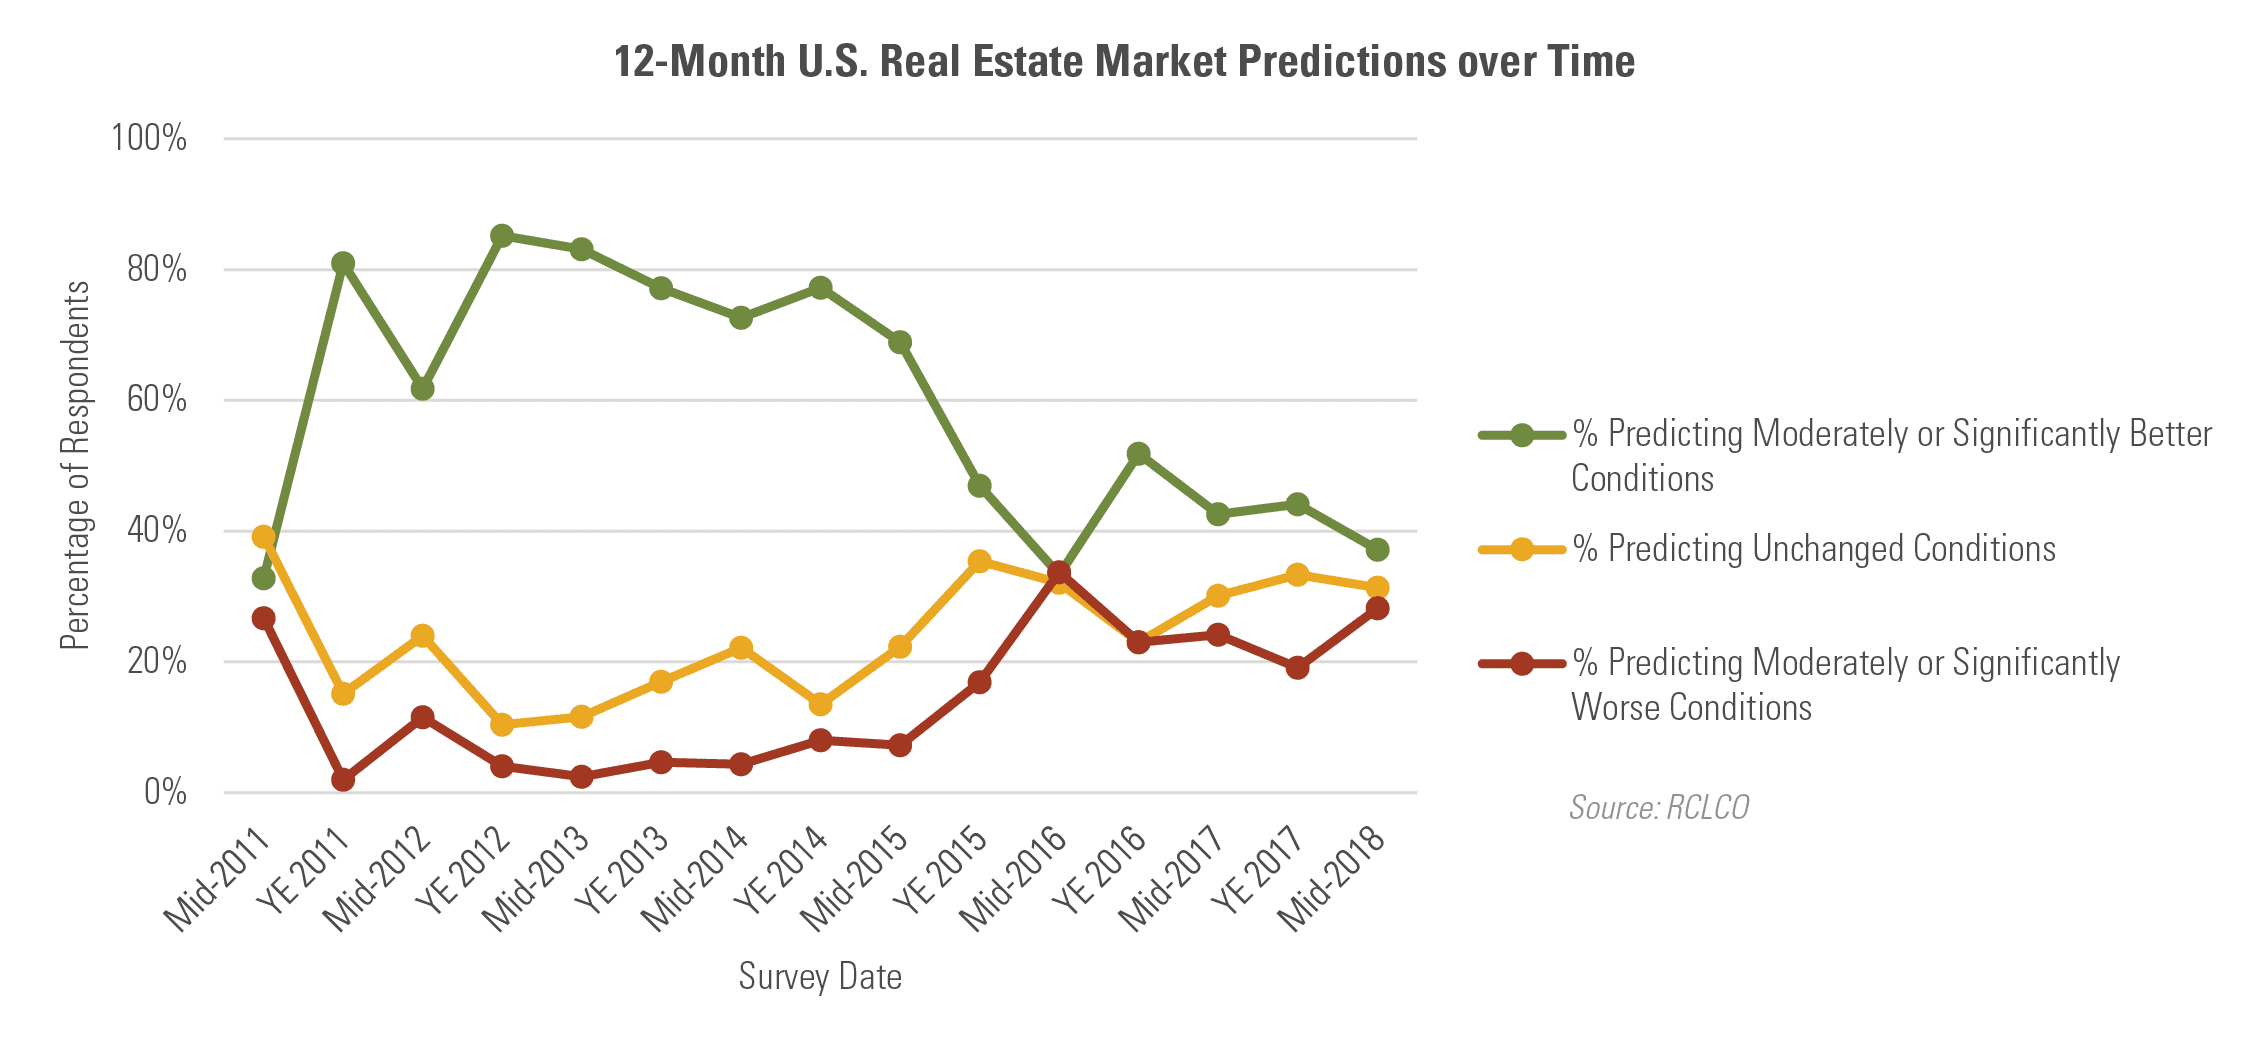 12 Month U.S. Real Estate Market Predictions over Time